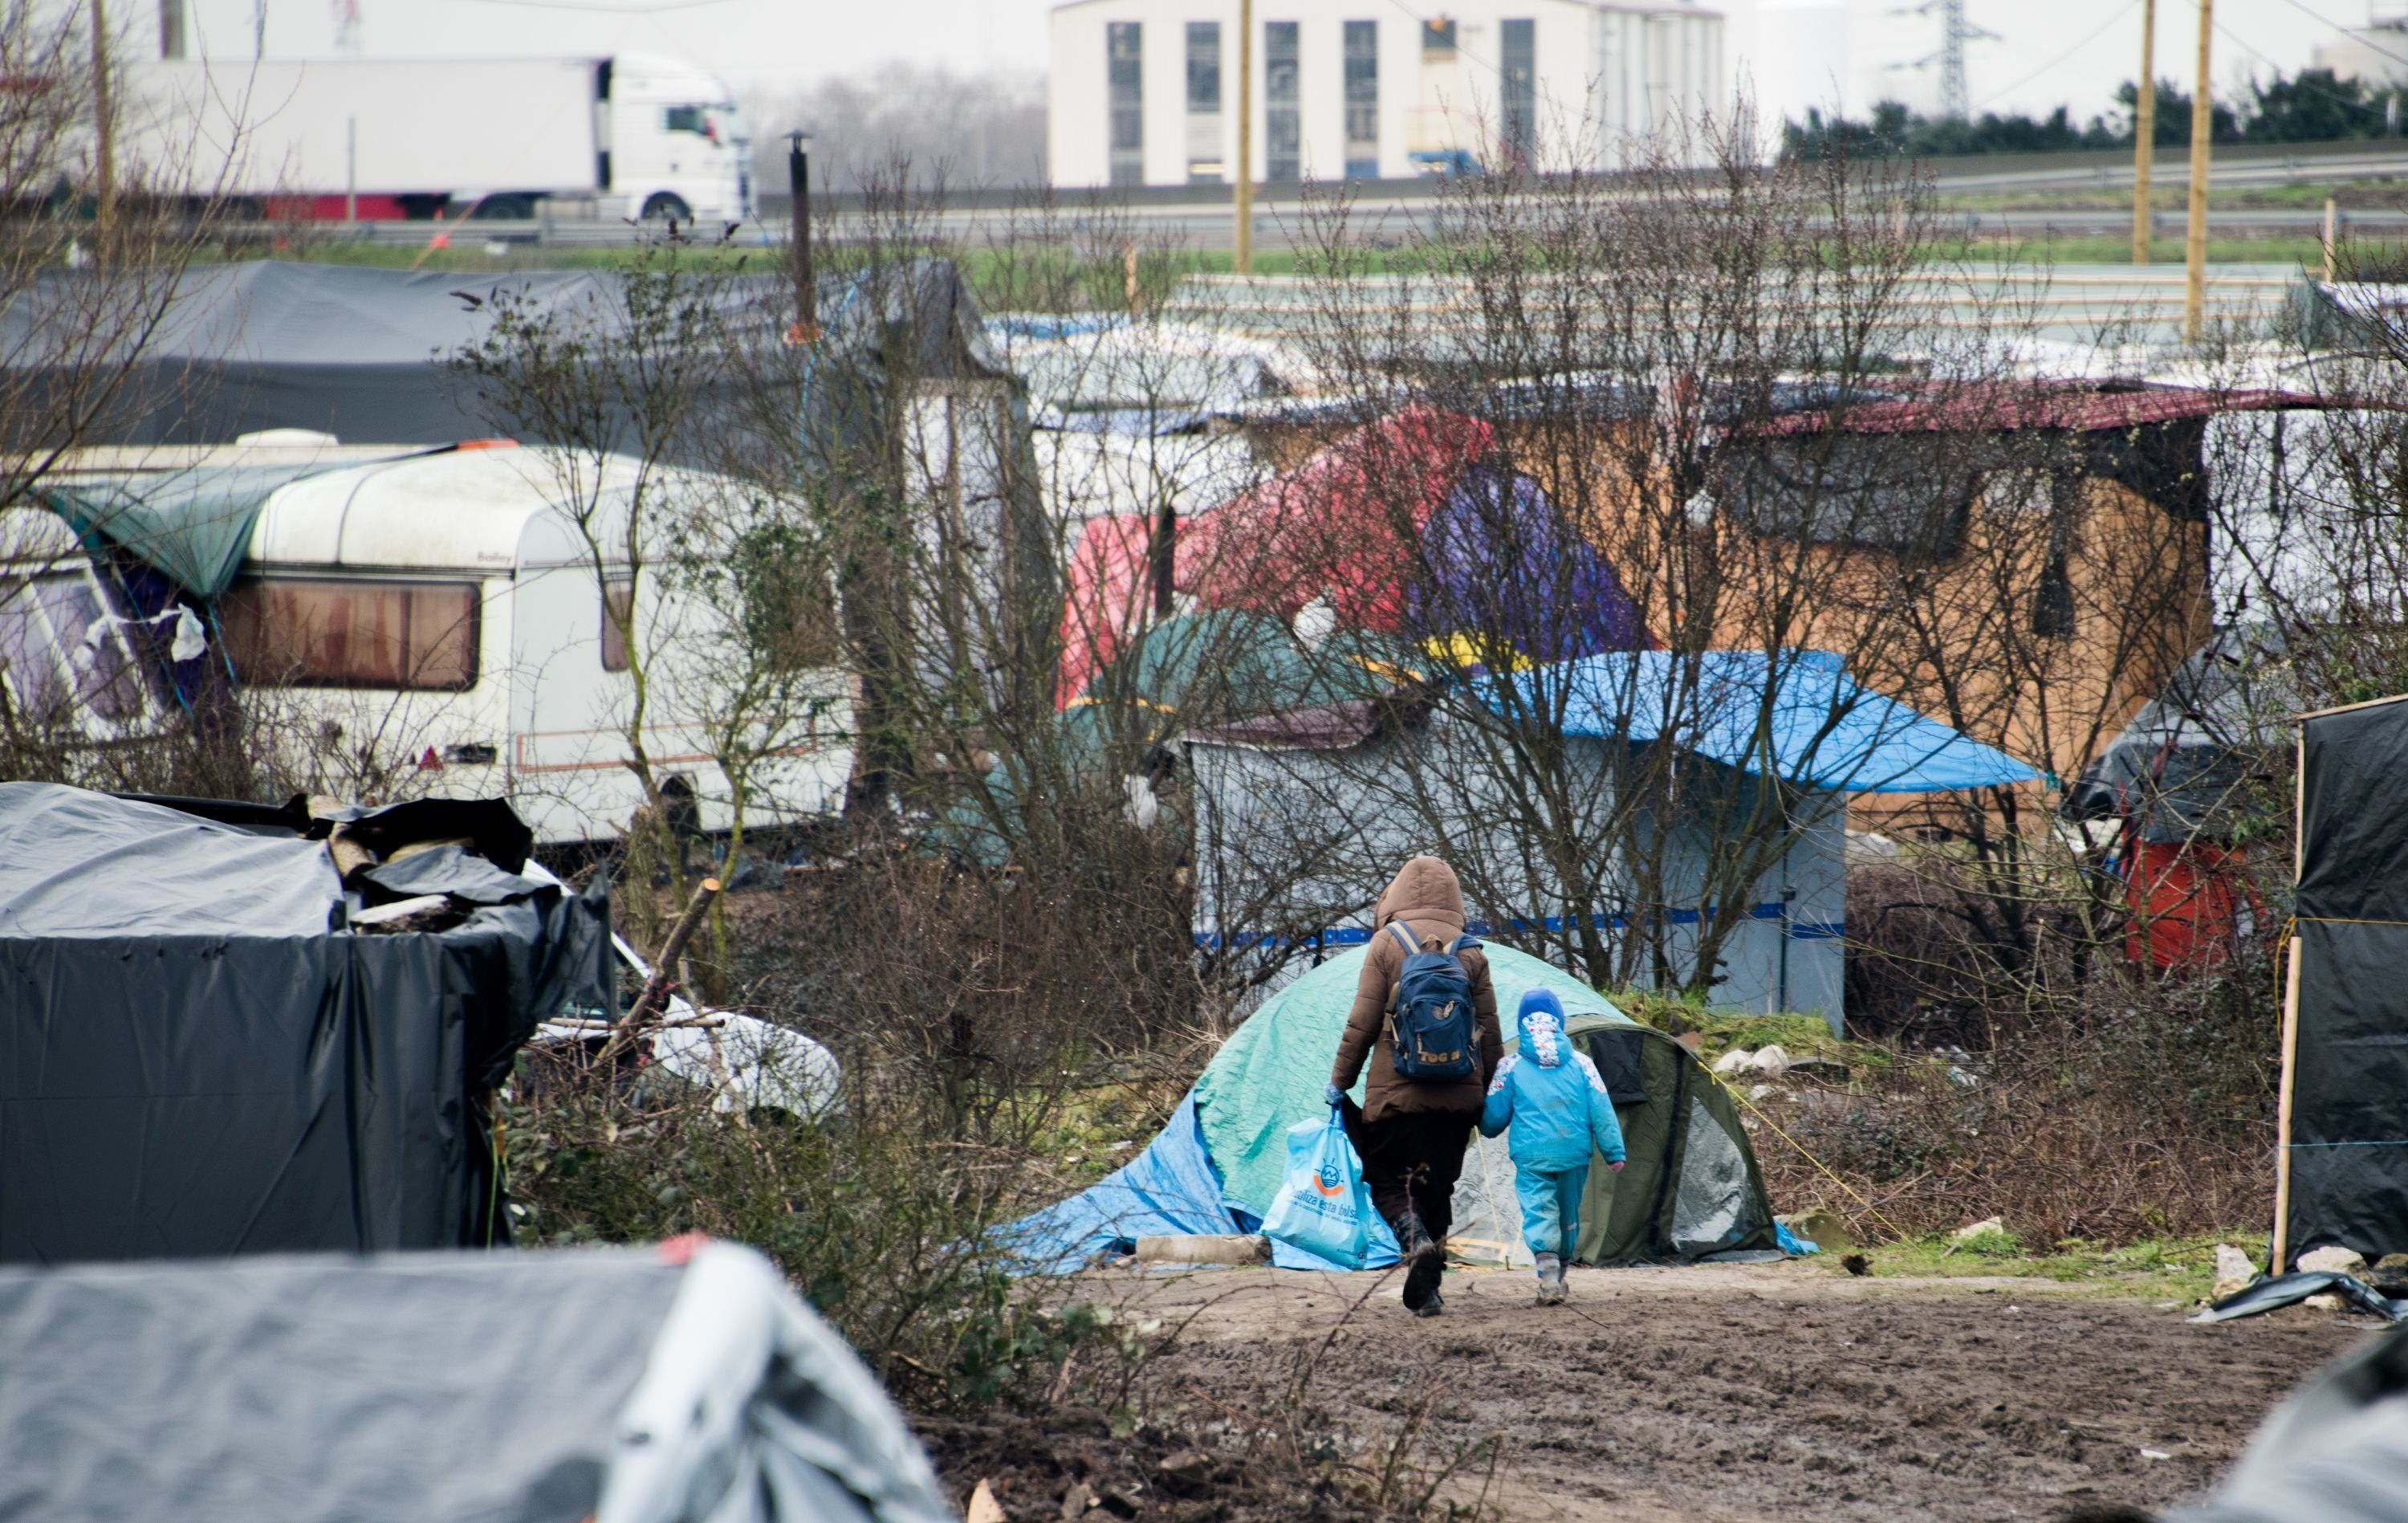 Children living in refugee camps in northern France are being subjected to sexual exploitation, violence...